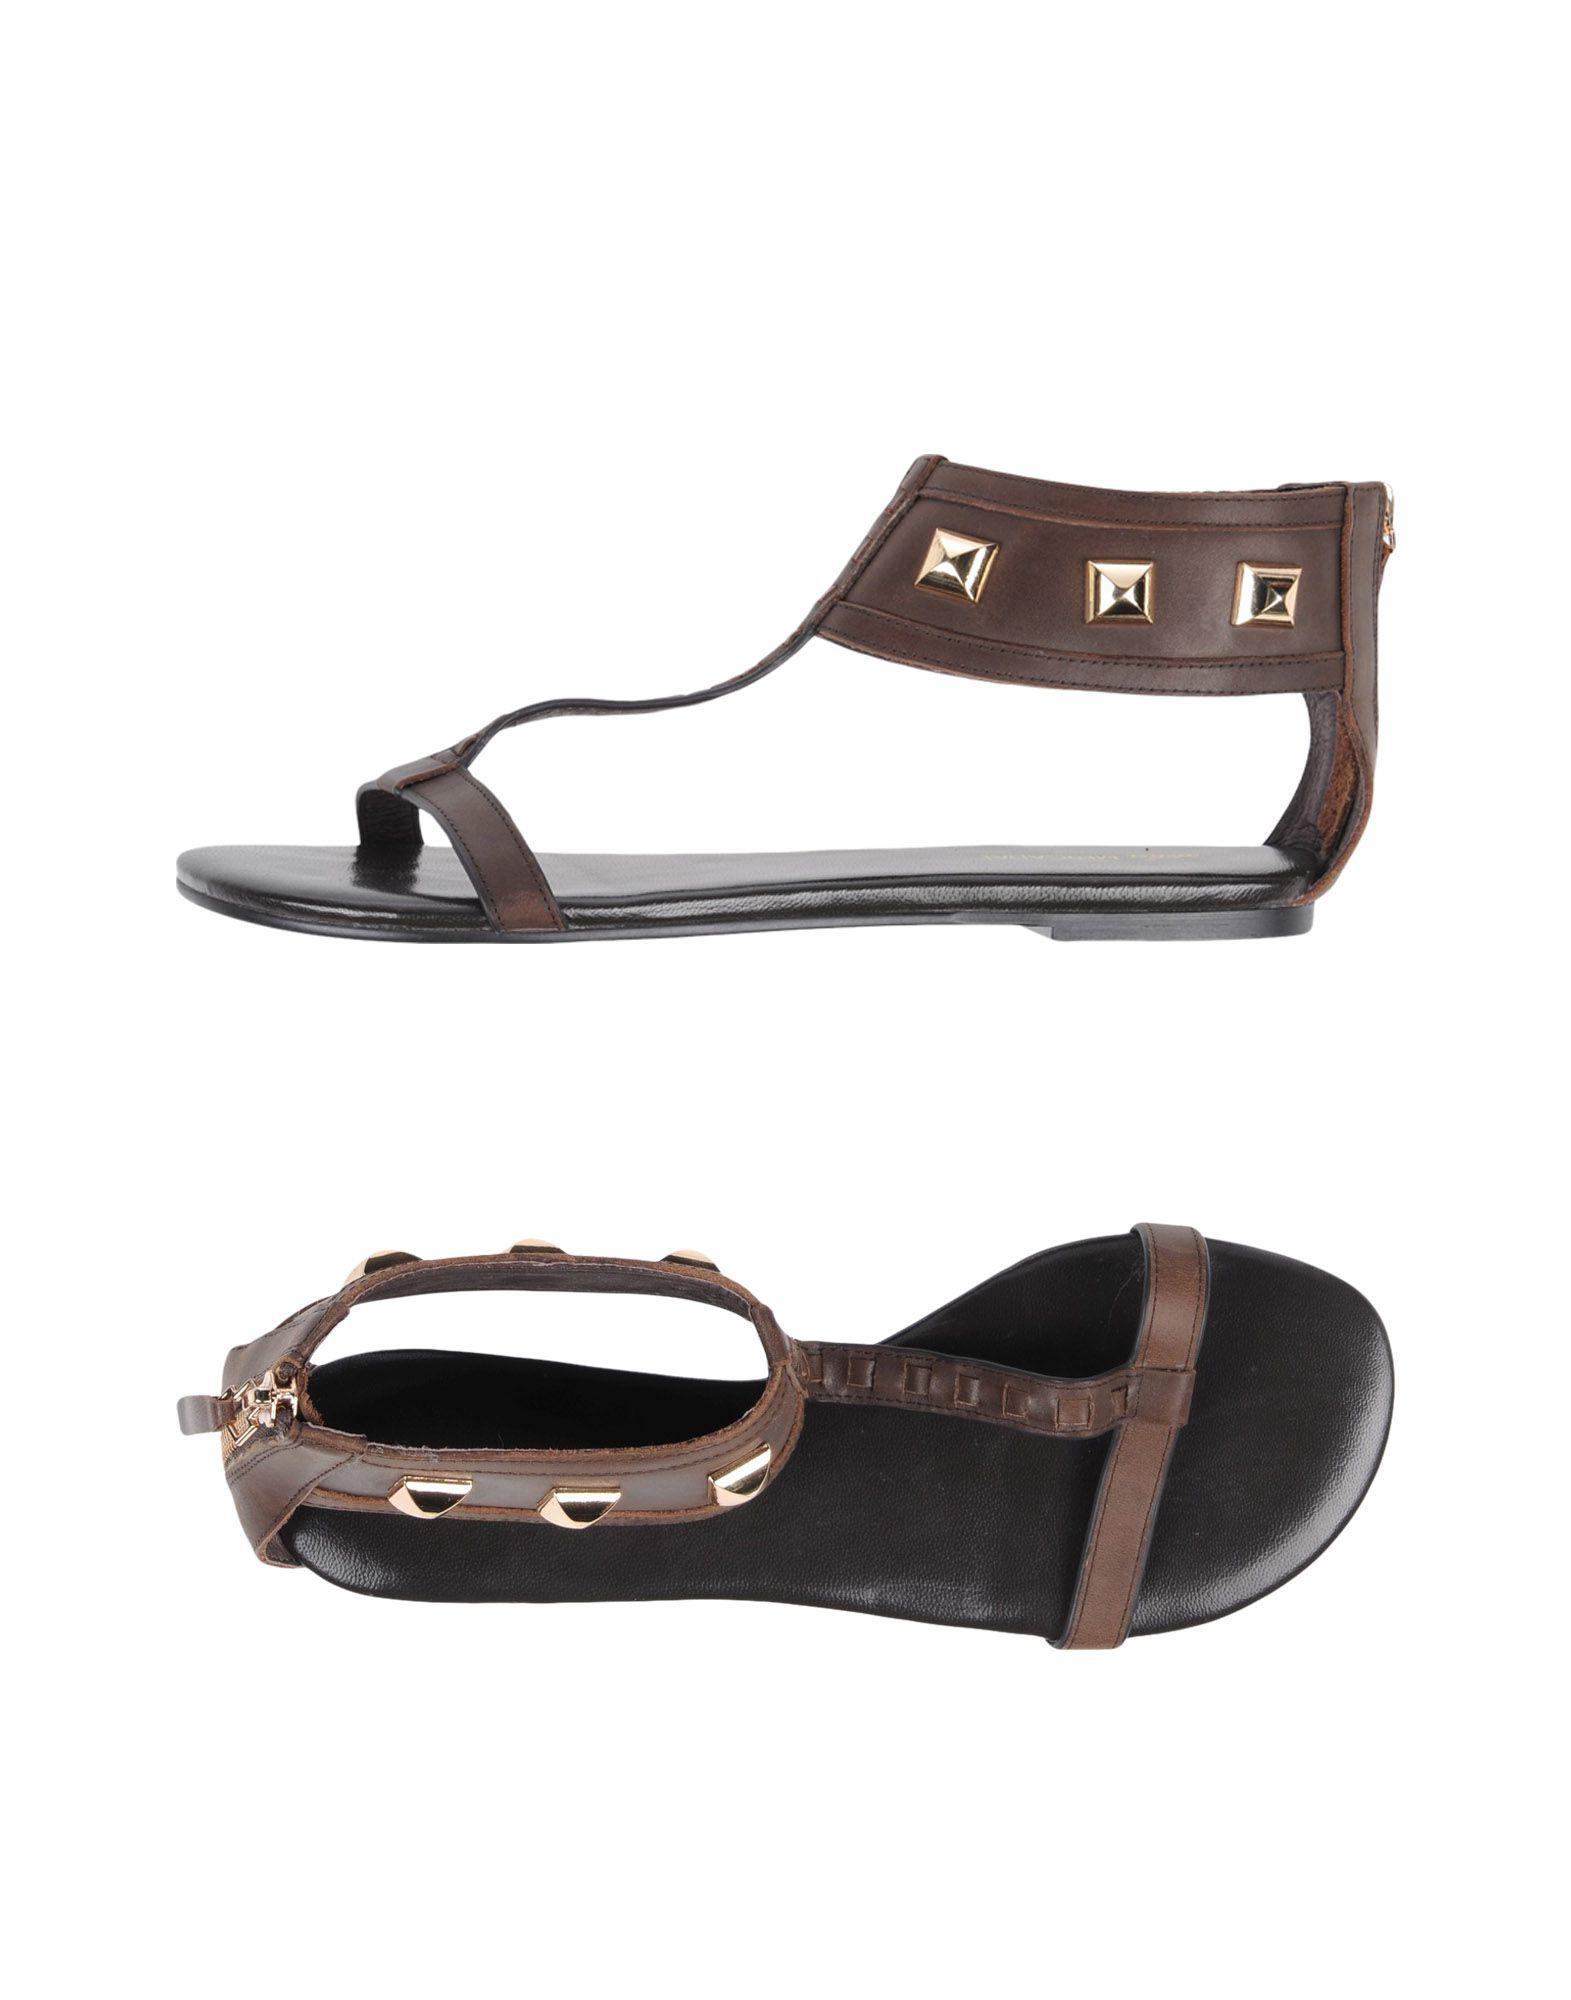 Countdown Package Cheap Online FOOTWEAR - Toe post sandals Mercadal Buy Cheap Largest Supplier Outlet New Free Shipping 2018 obziv1q